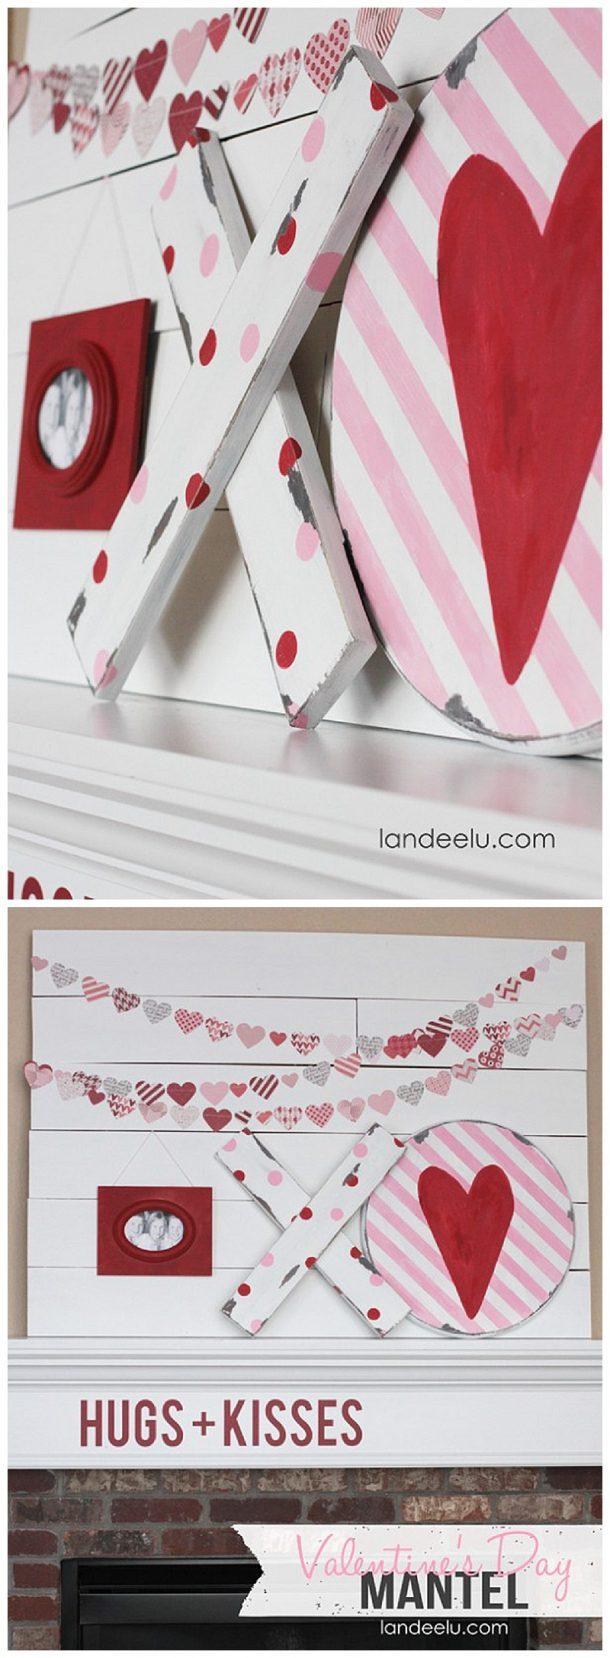 Valentines Day Mantel: Hugs And Kisses